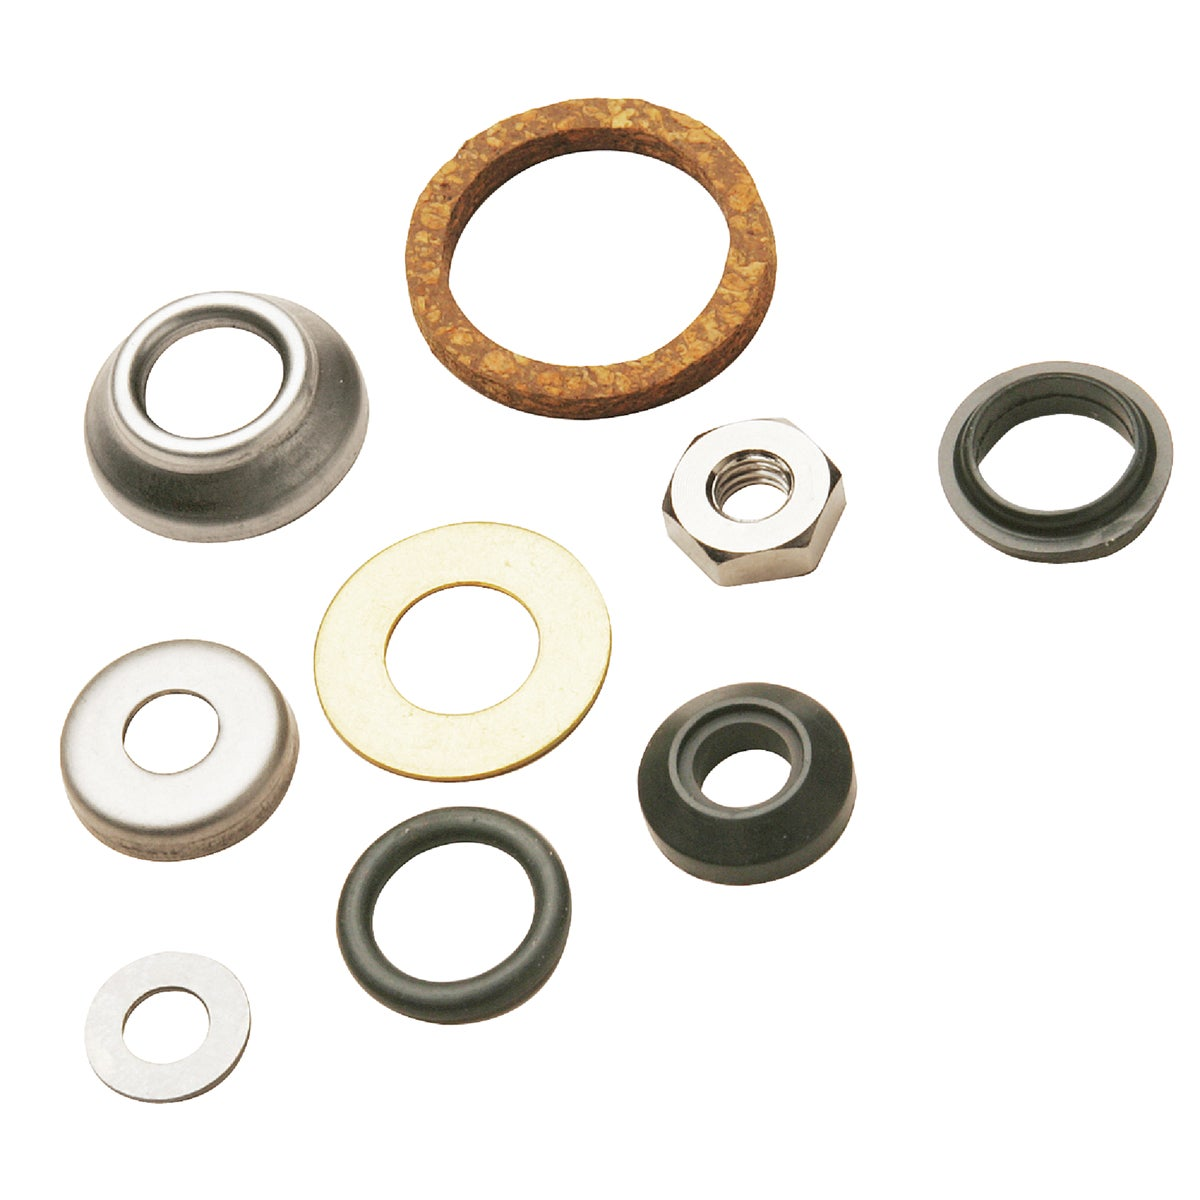 CHICAGO FCT REPAIR KIT - 489891 by Plumb Pak/keeney Mfg